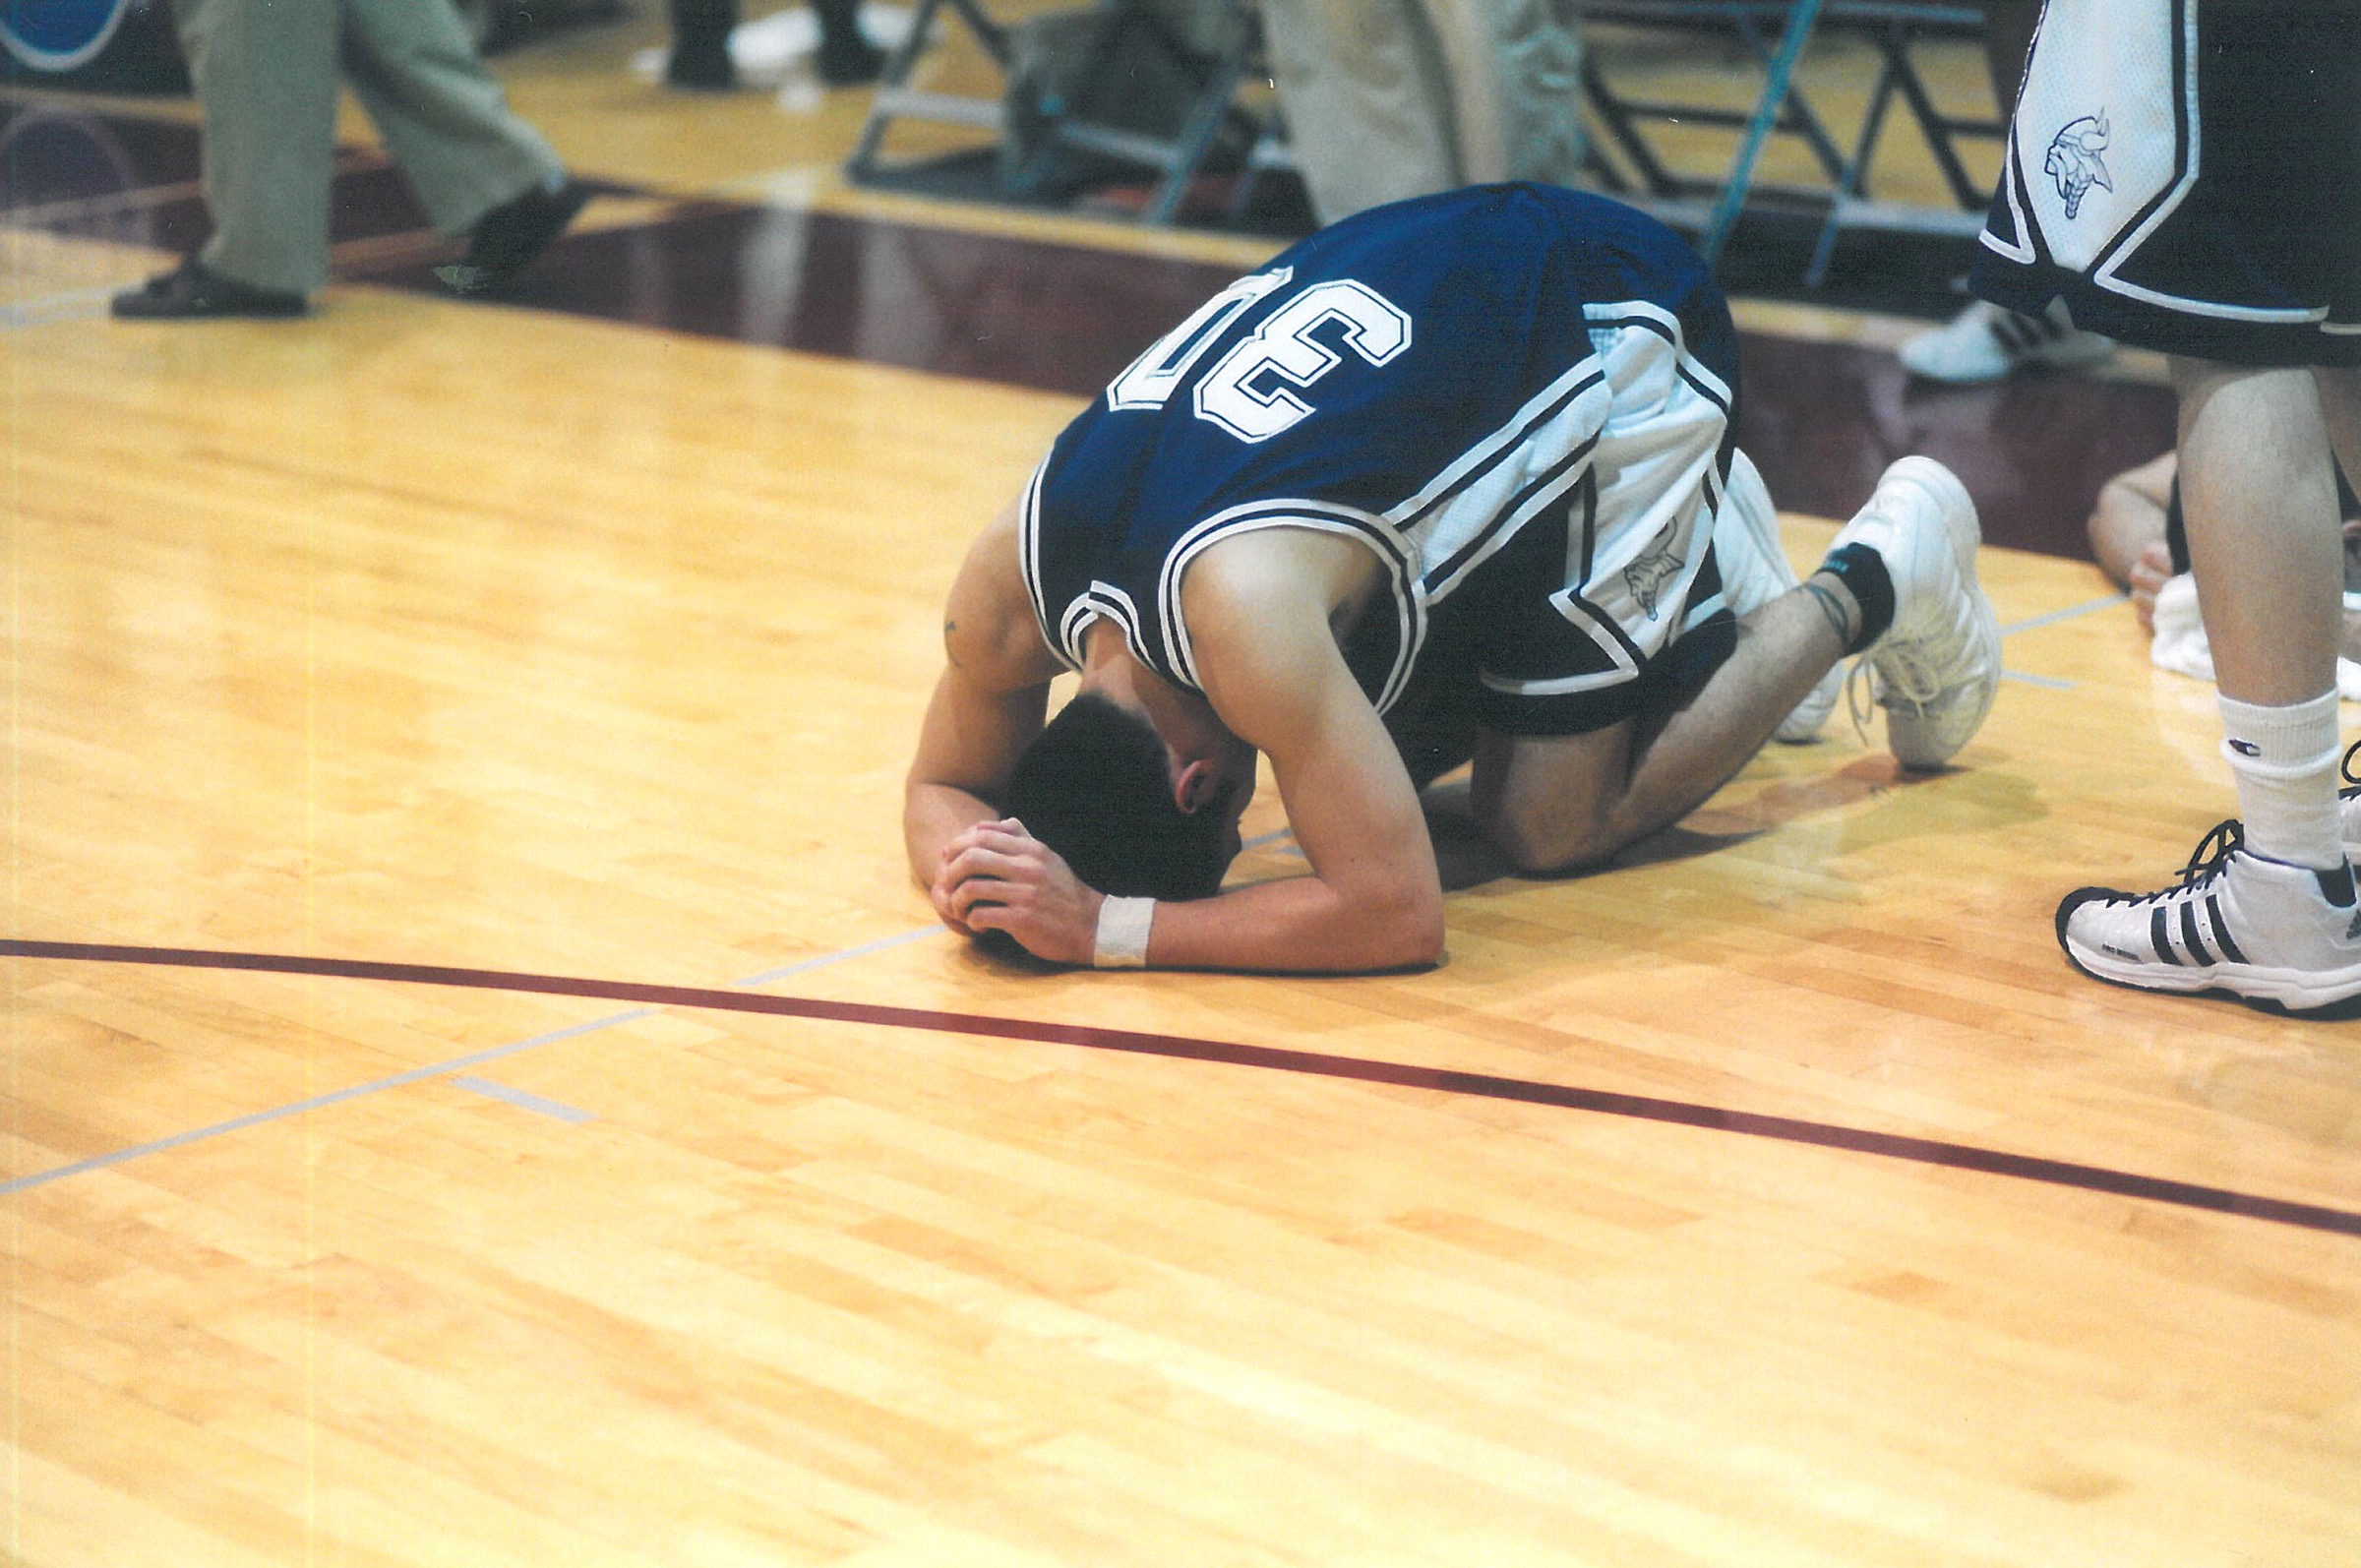 Rob Nenahlo buries his head as he falls to the floor at the end of the game against UW-Stevens Point.